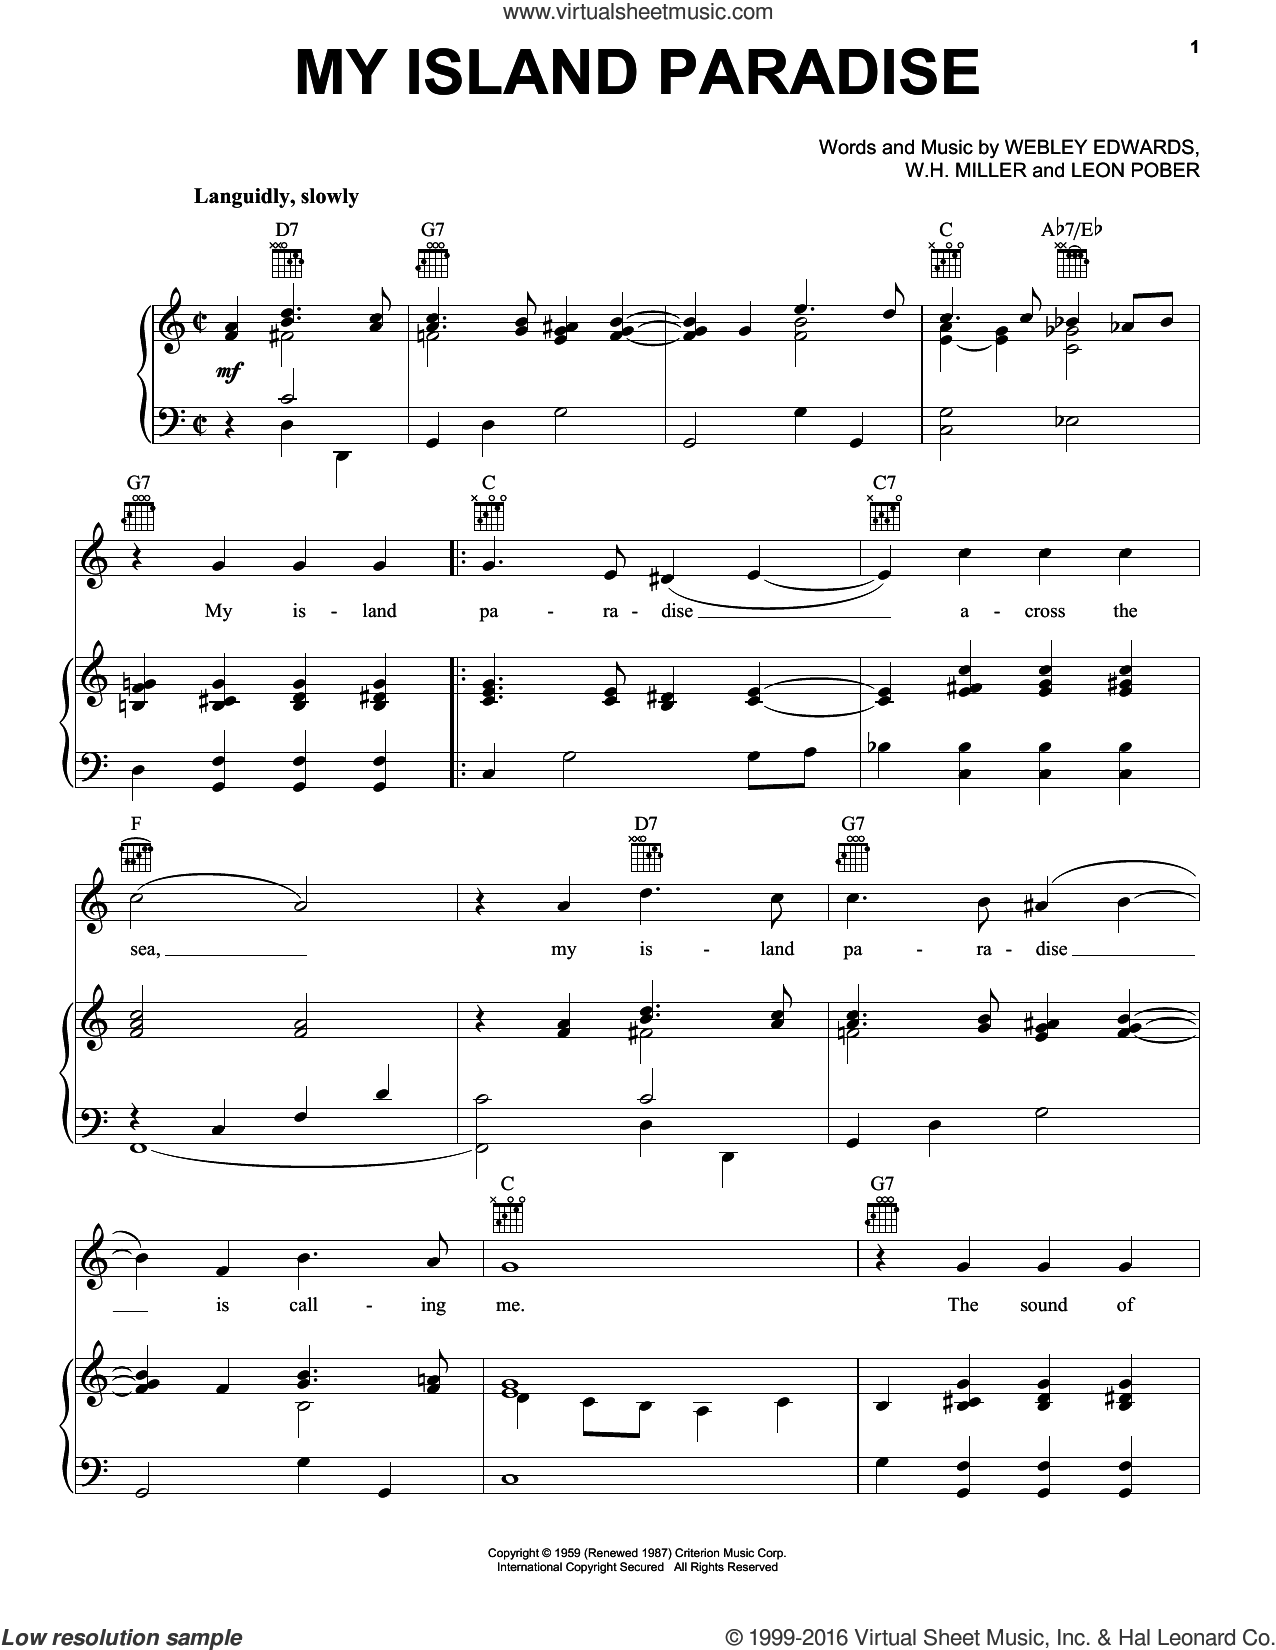 My Island Paradise sheet music for voice, piano or guitar by Leon Pober, W.H. Miller and Webley Edwards, intermediate skill level